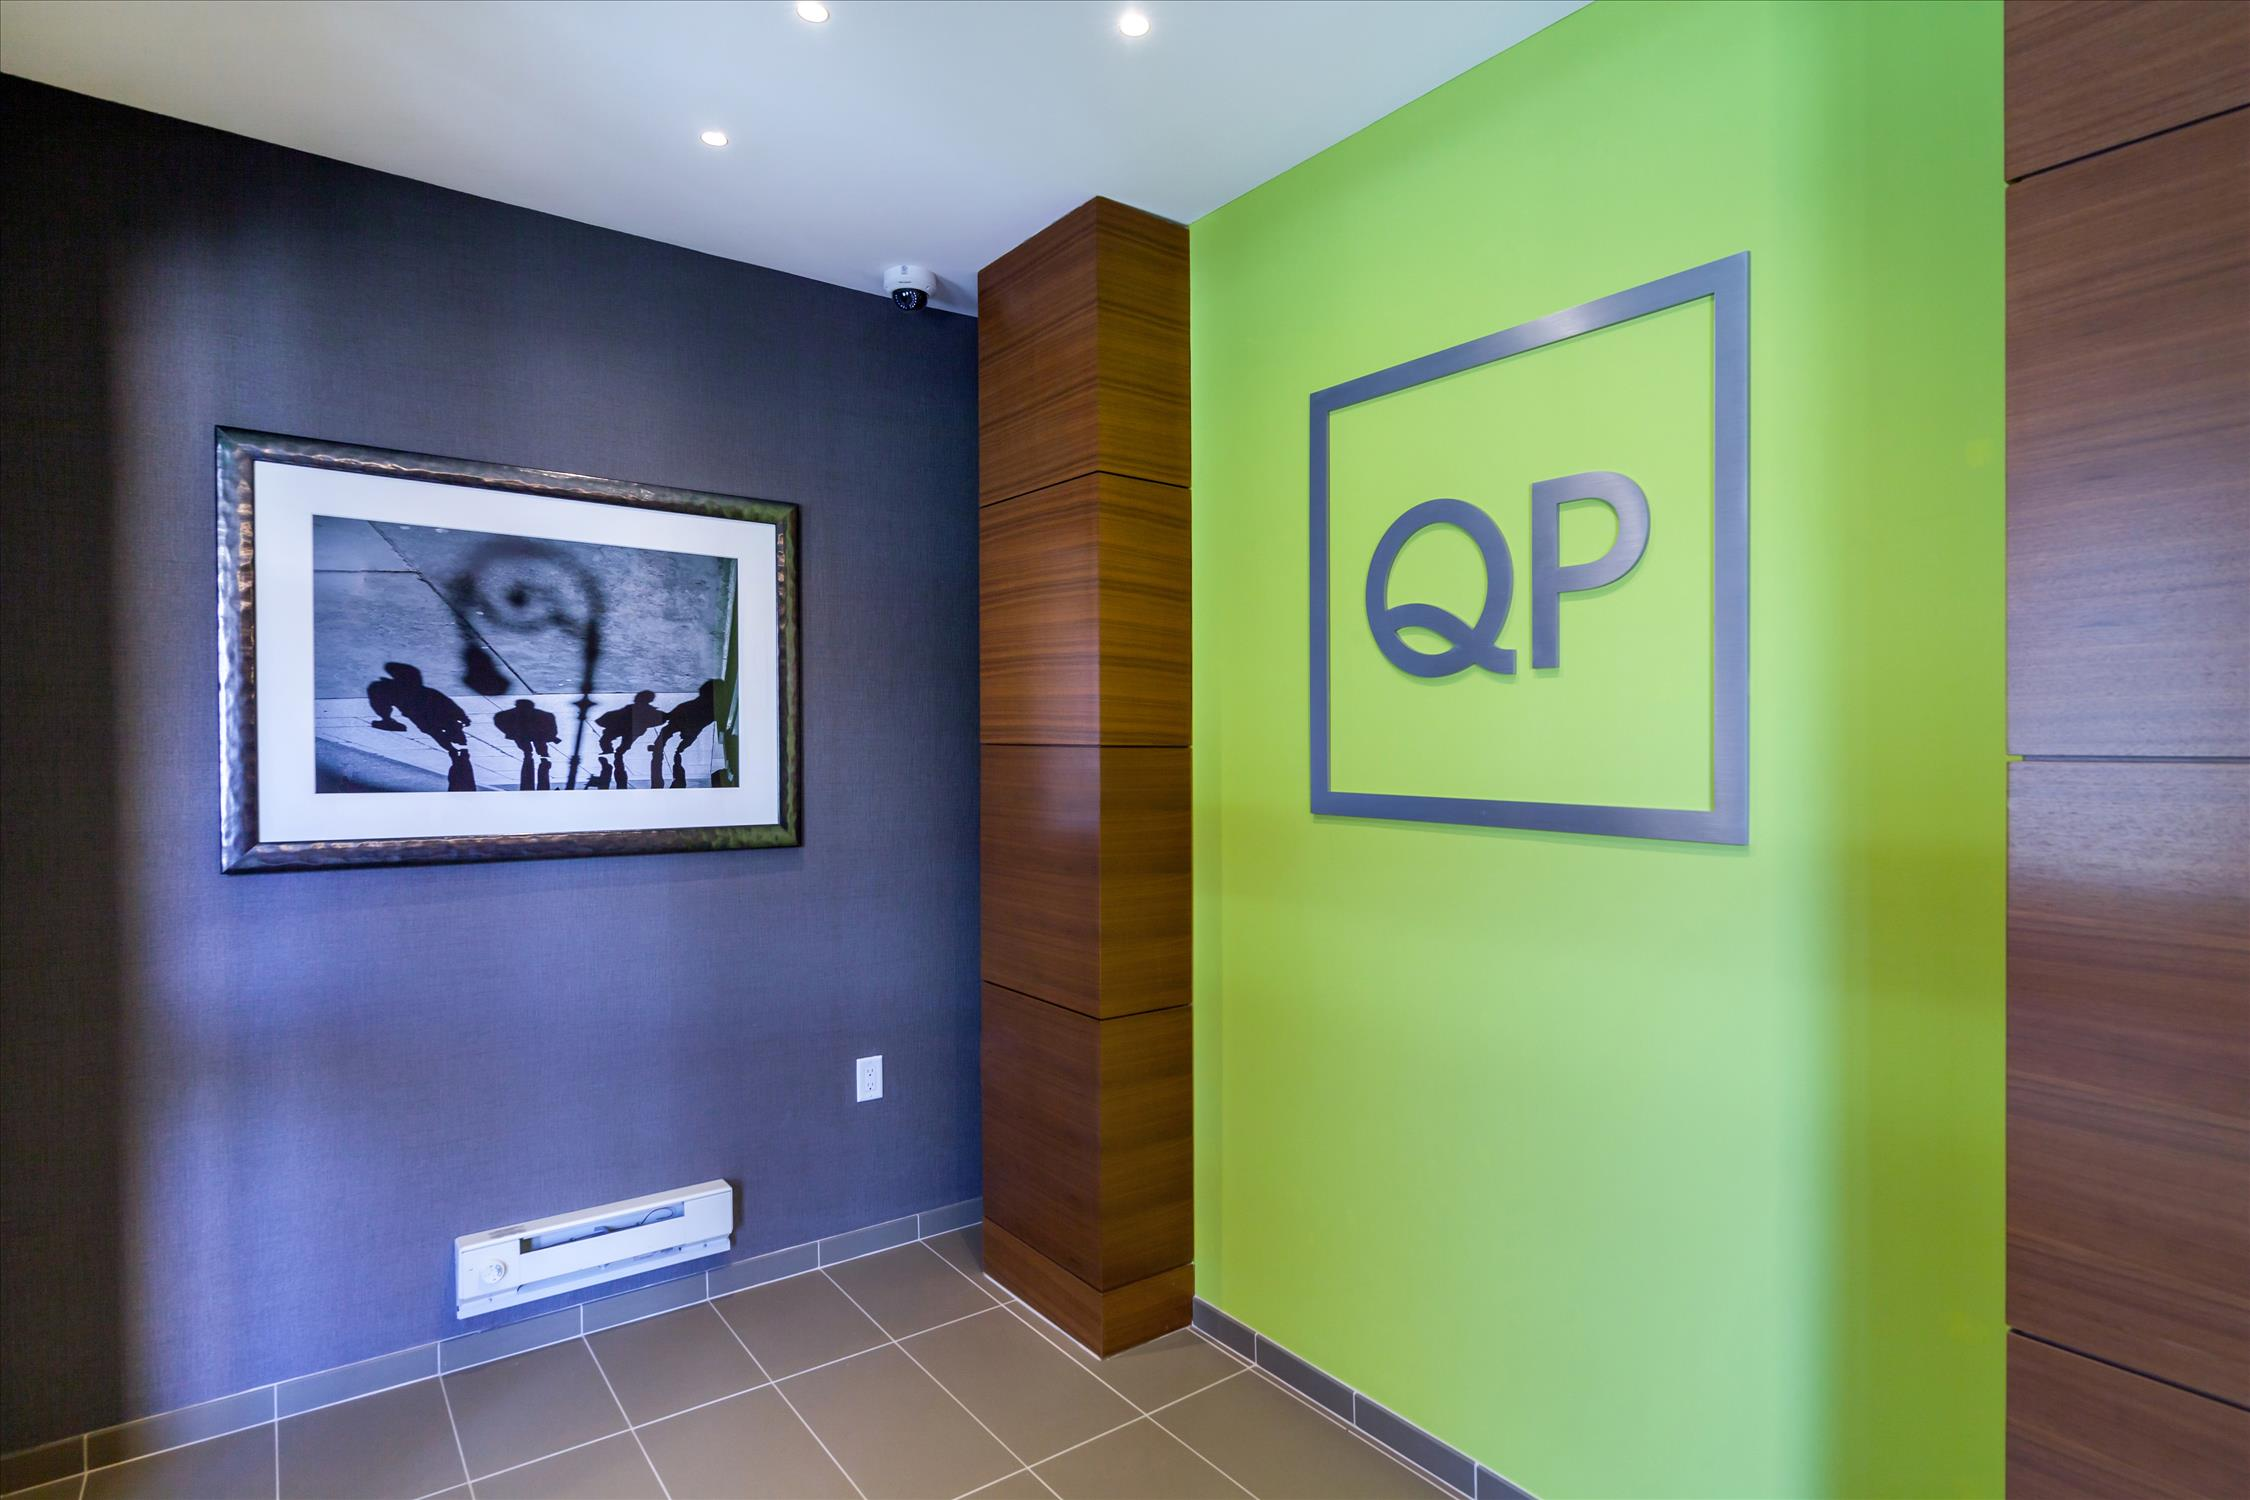 QUARRY PLACE - Curated by Indiewalls